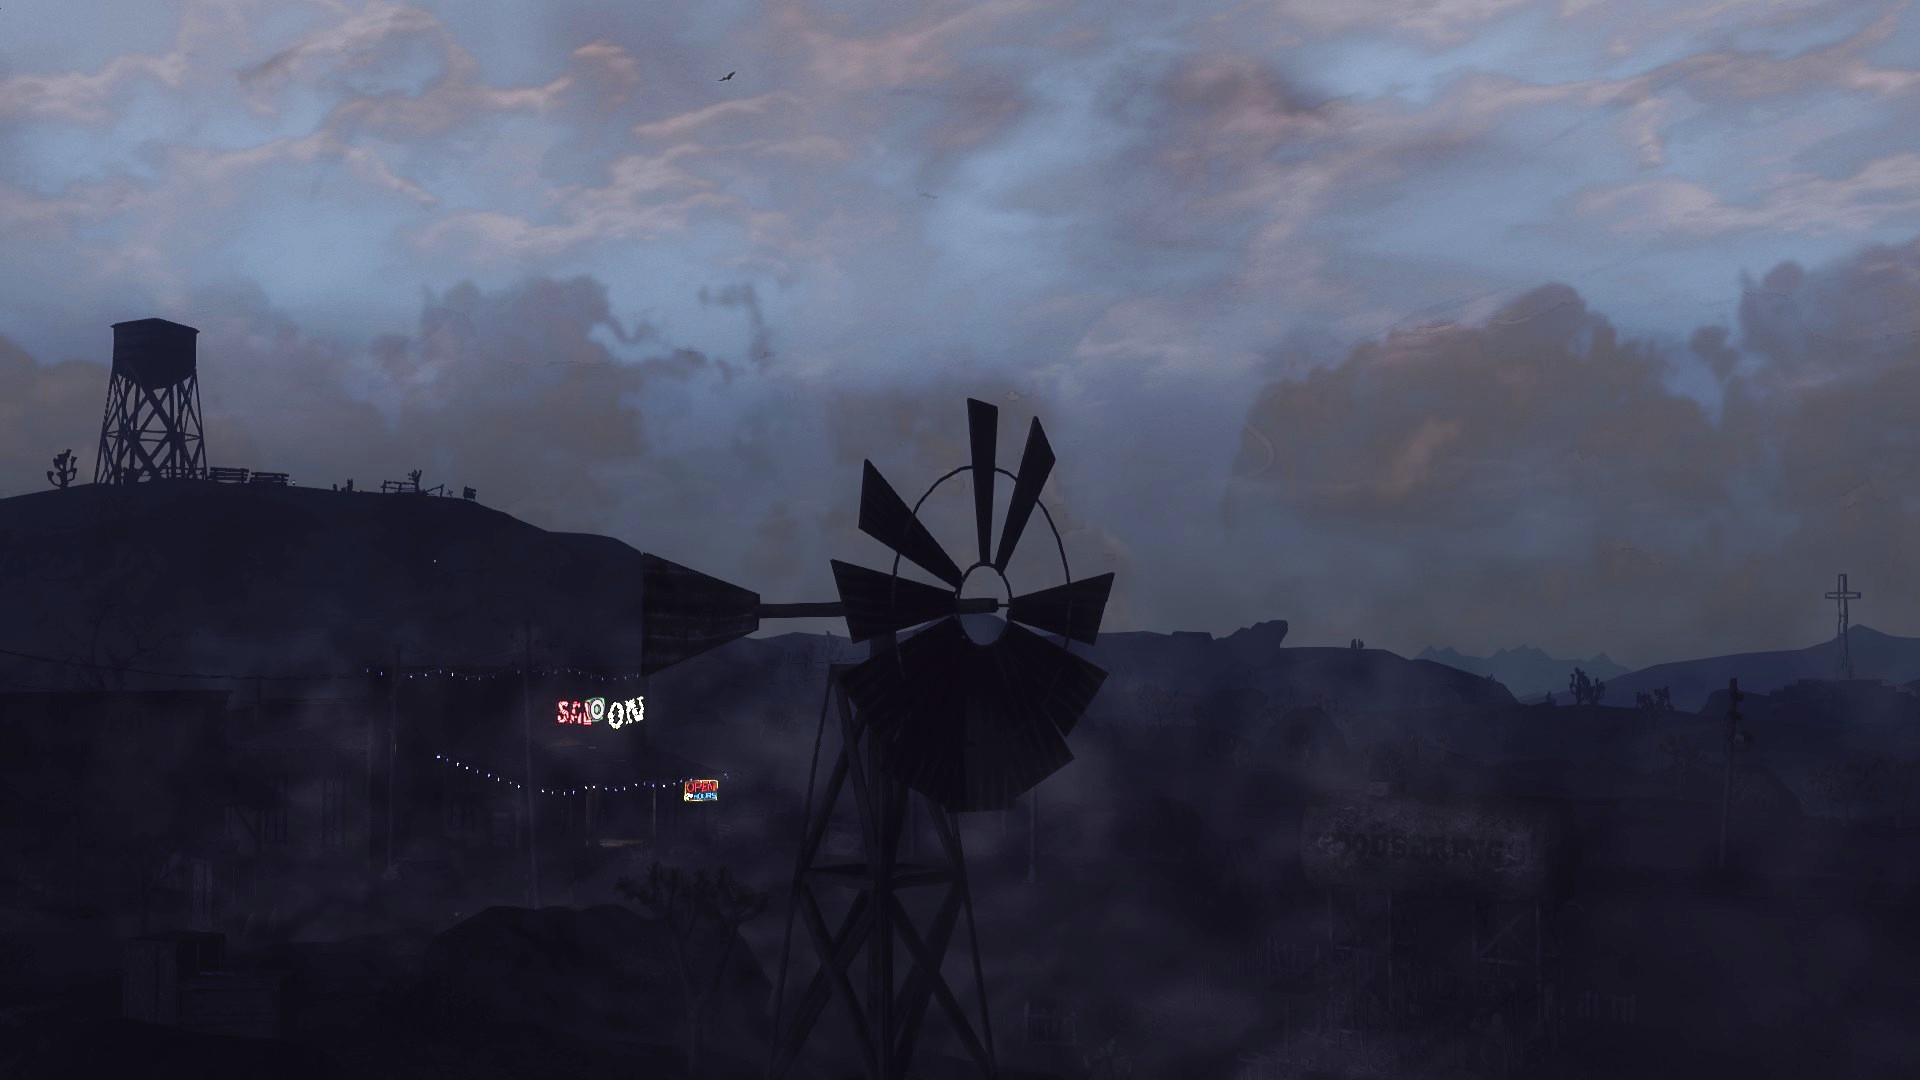 Skyline of beautiful downtown goodsprings at fallout new vegas mods and community - Fallout new vegas skyline ...